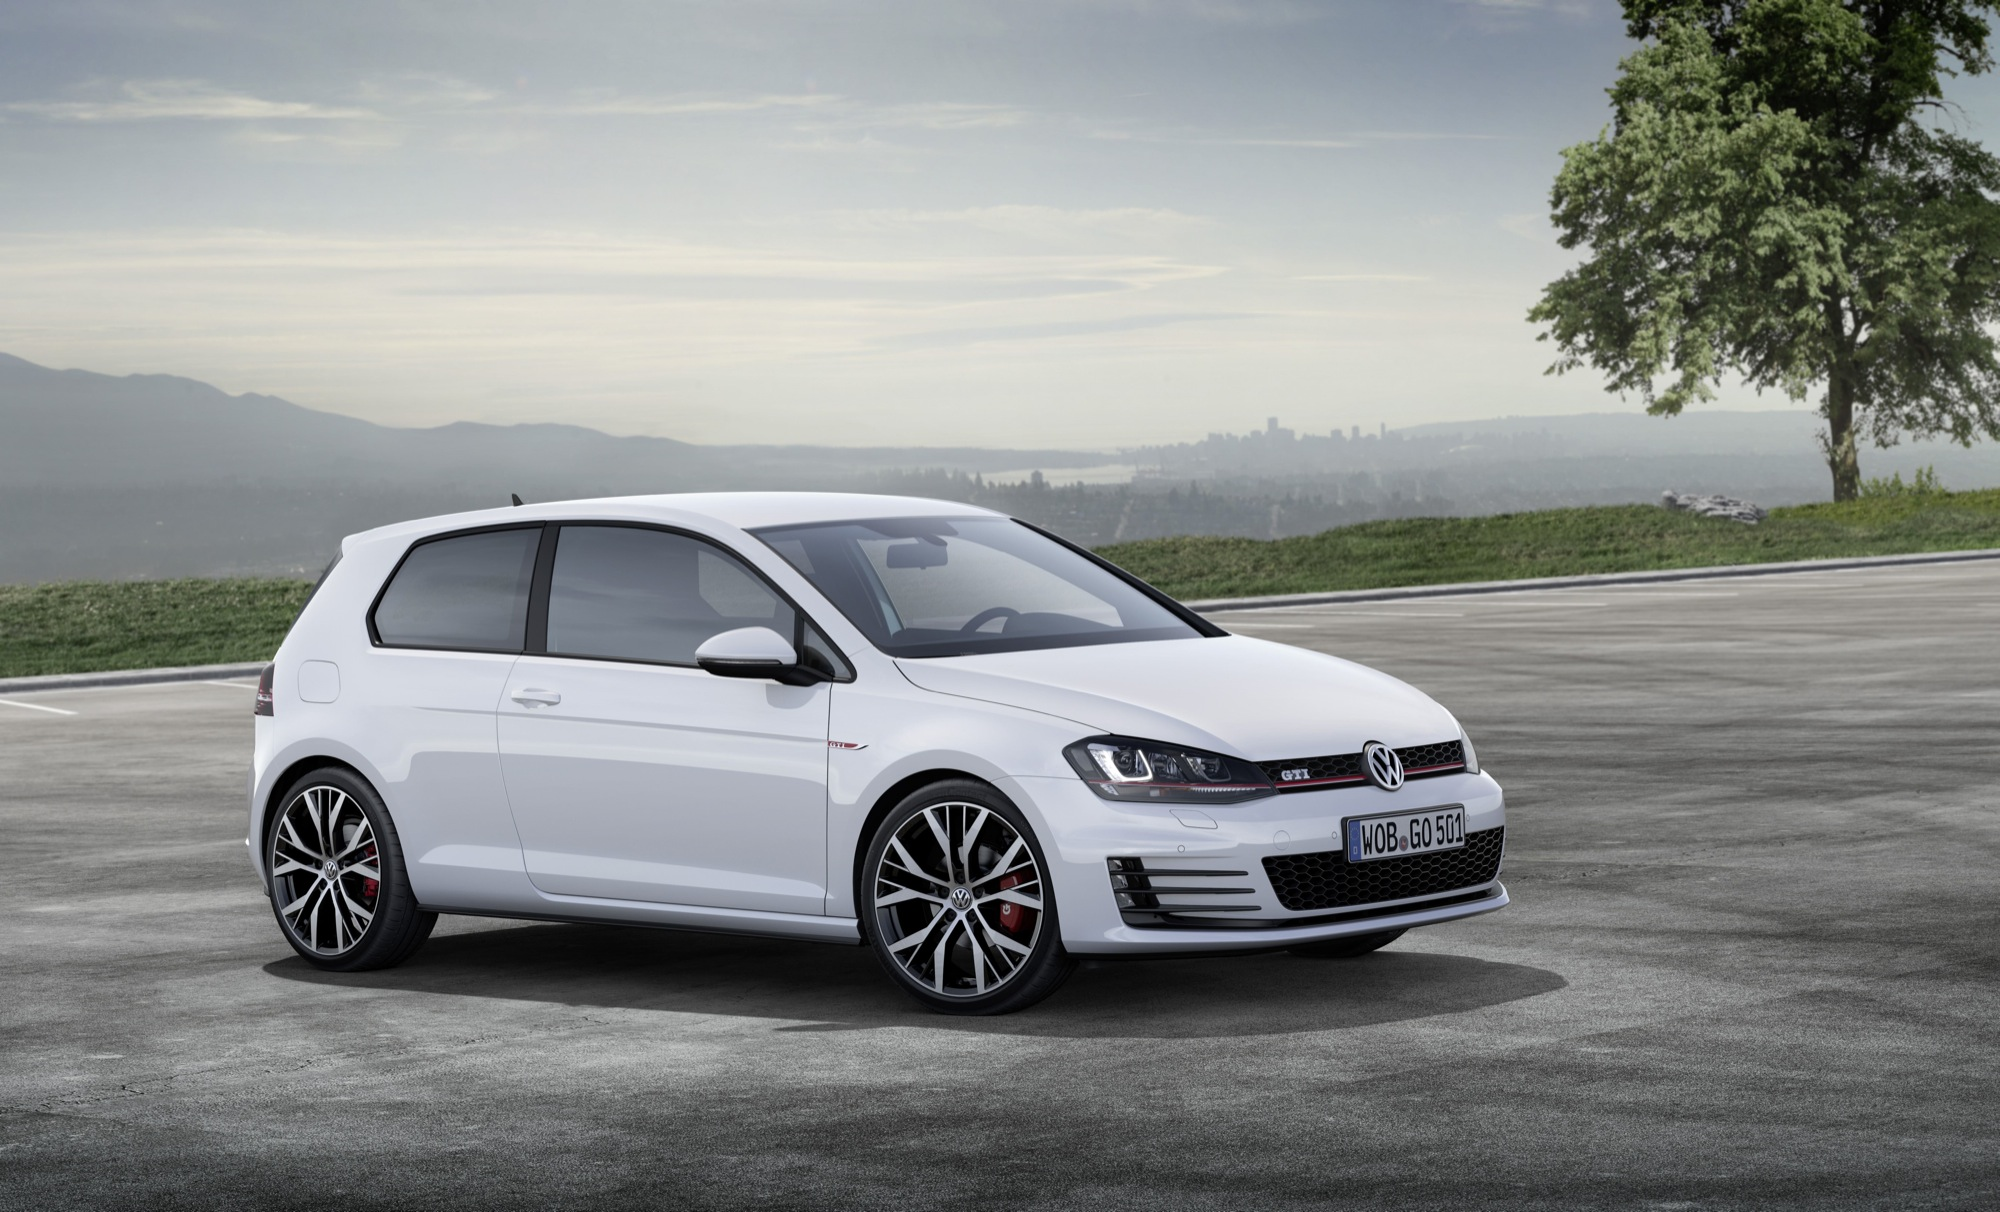 volkswagen prices 2015 golf gti in america. Black Bedroom Furniture Sets. Home Design Ideas